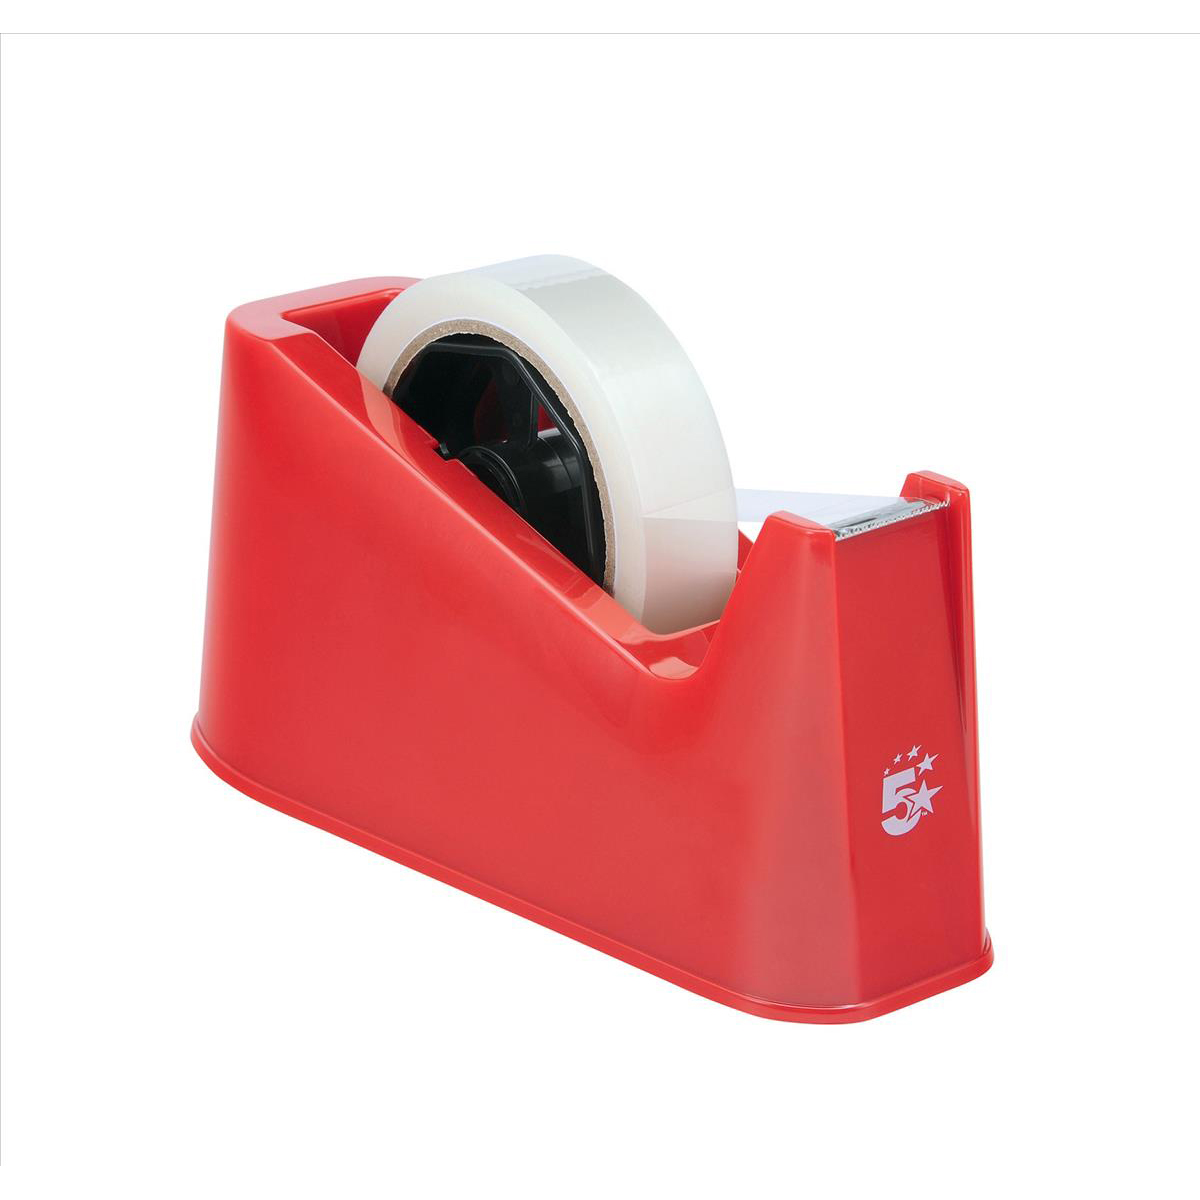 5 Star Office Tape Dispenser Desktop Weighted Non-slip Roll Capacity 25mm Width 75m Length Max Red